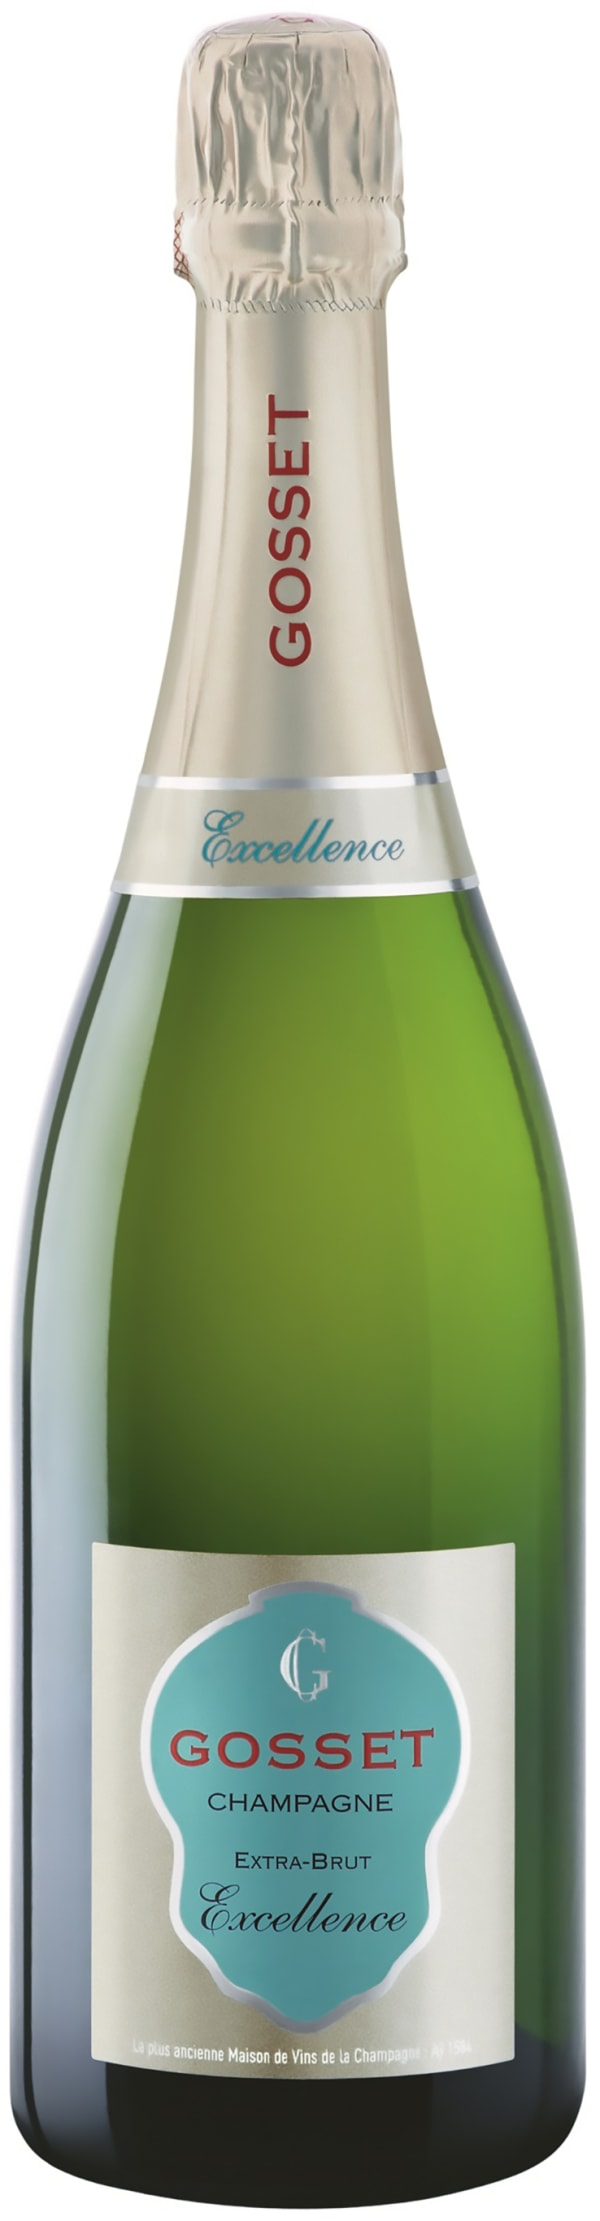 Gosset Excellence Champagne Extra-Brut